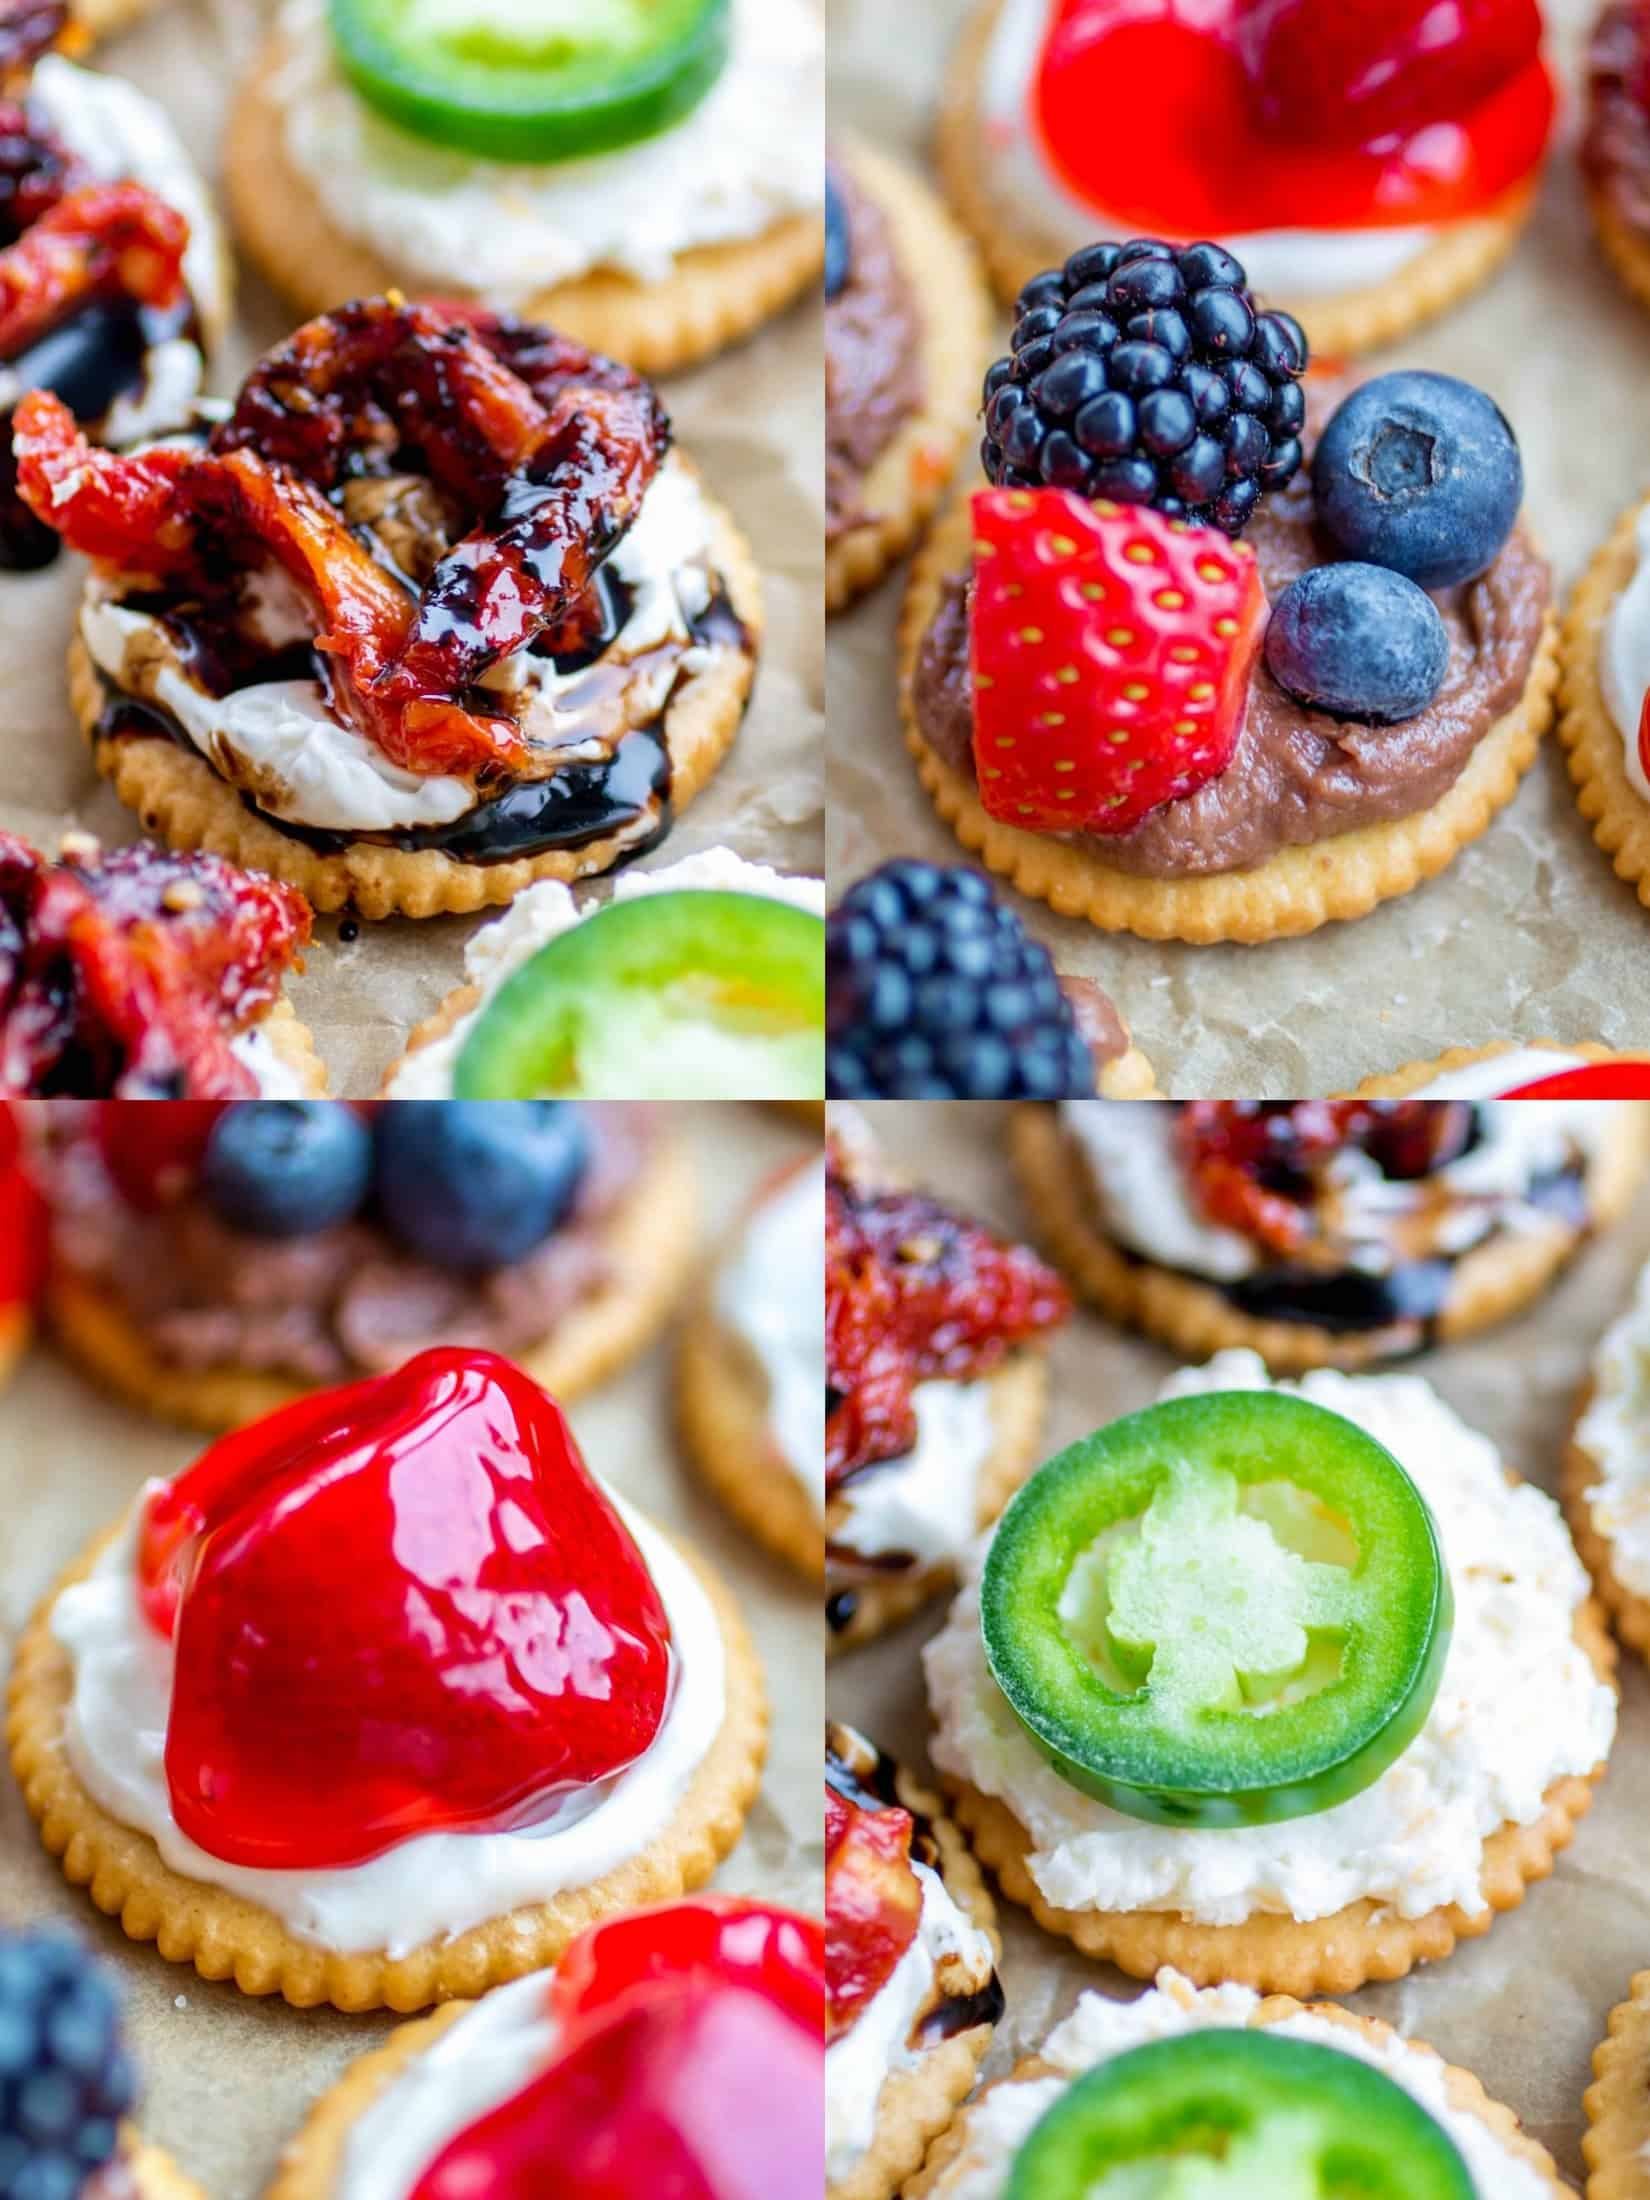 These sweet and savory bite-size recipes using RITZ Crackers, cream cheese and a few other tasty ingredients are going to be the star of your next gathering!